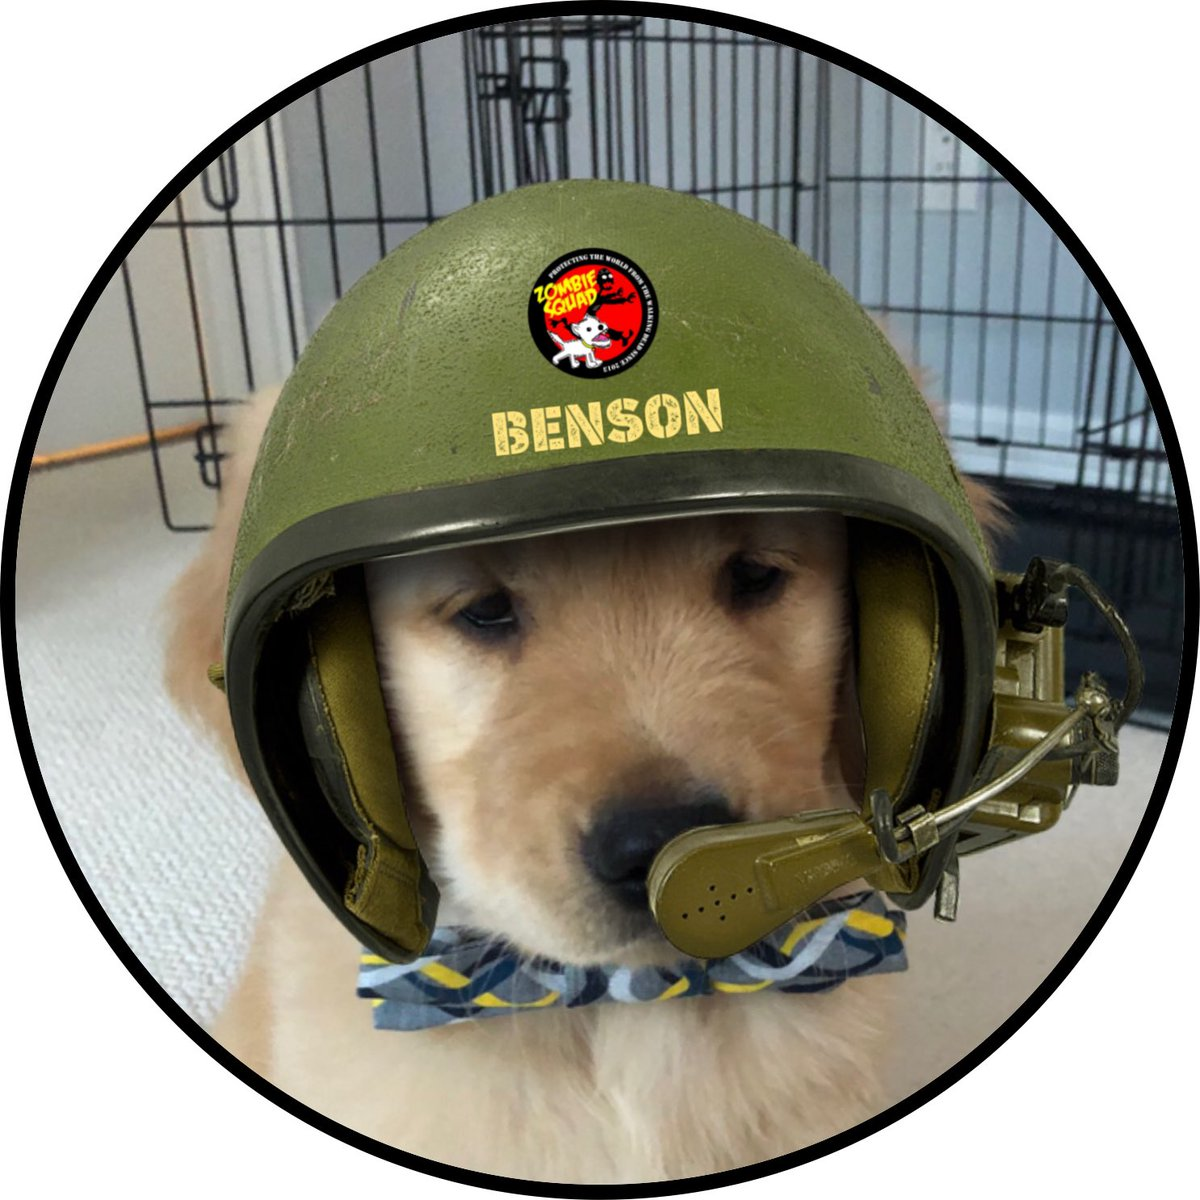 Welcome to #ZSHQ Pvt Benson @cgbosslady1 we have prepared your patrol kit, bark when you need support from @ZombieSquadHQ *salutes* https://t.co/Cp6LMw0IG2